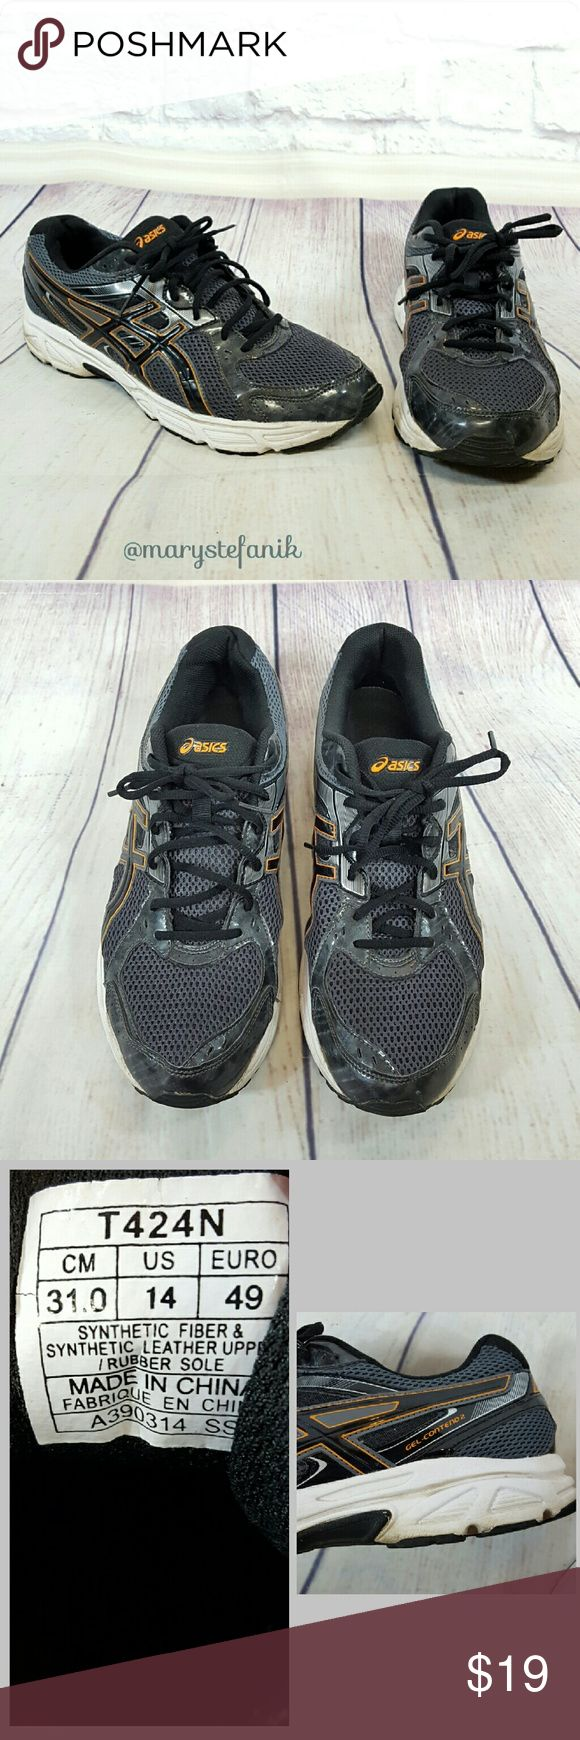 MENS Asics Gel-Contend 2 Black & Orange Sneaker 14 MENS Asics Gel-Contend 2 Black & Orange Running Sneaker size 14 in great used condition. T424N. Reflective material for nighttime running.  Please let me know if you have any questions. Happy Poshing! Asics Shoes Sneakers